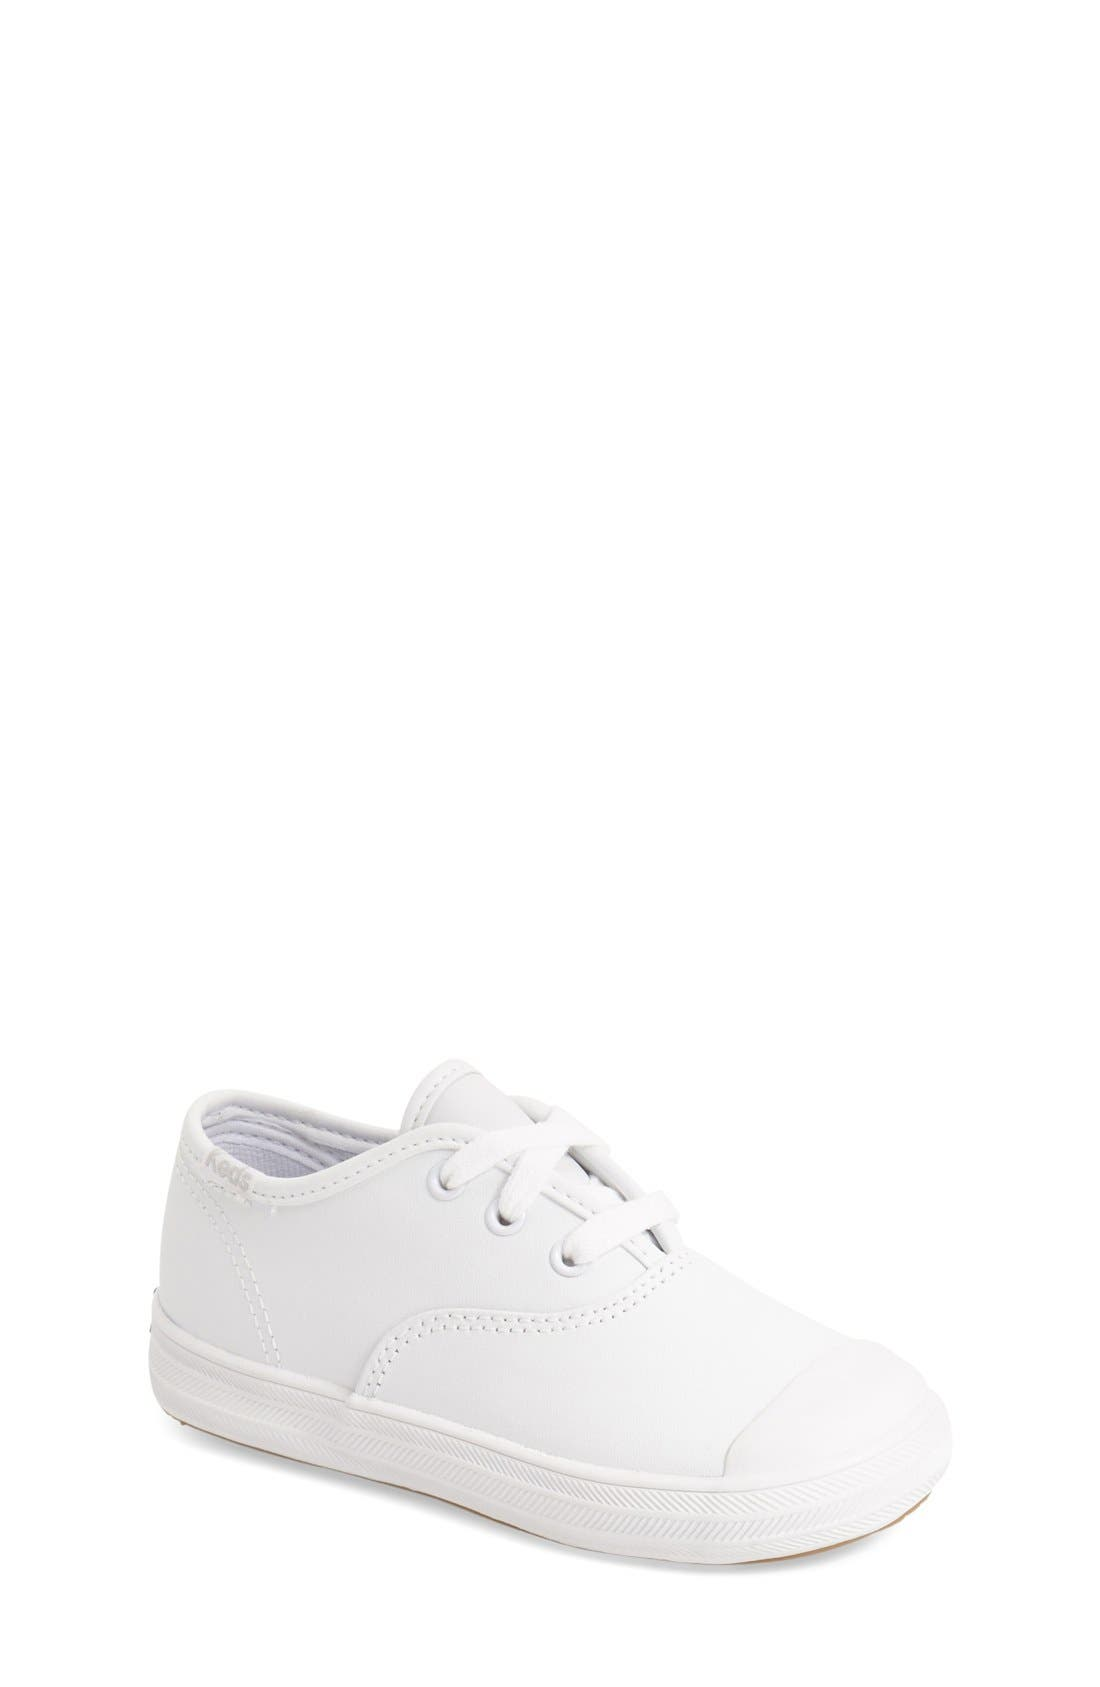 KEDS<SUP>®</SUP>, 'Champion' Sneaker, Main thumbnail 1, color, WHITE LEATHER